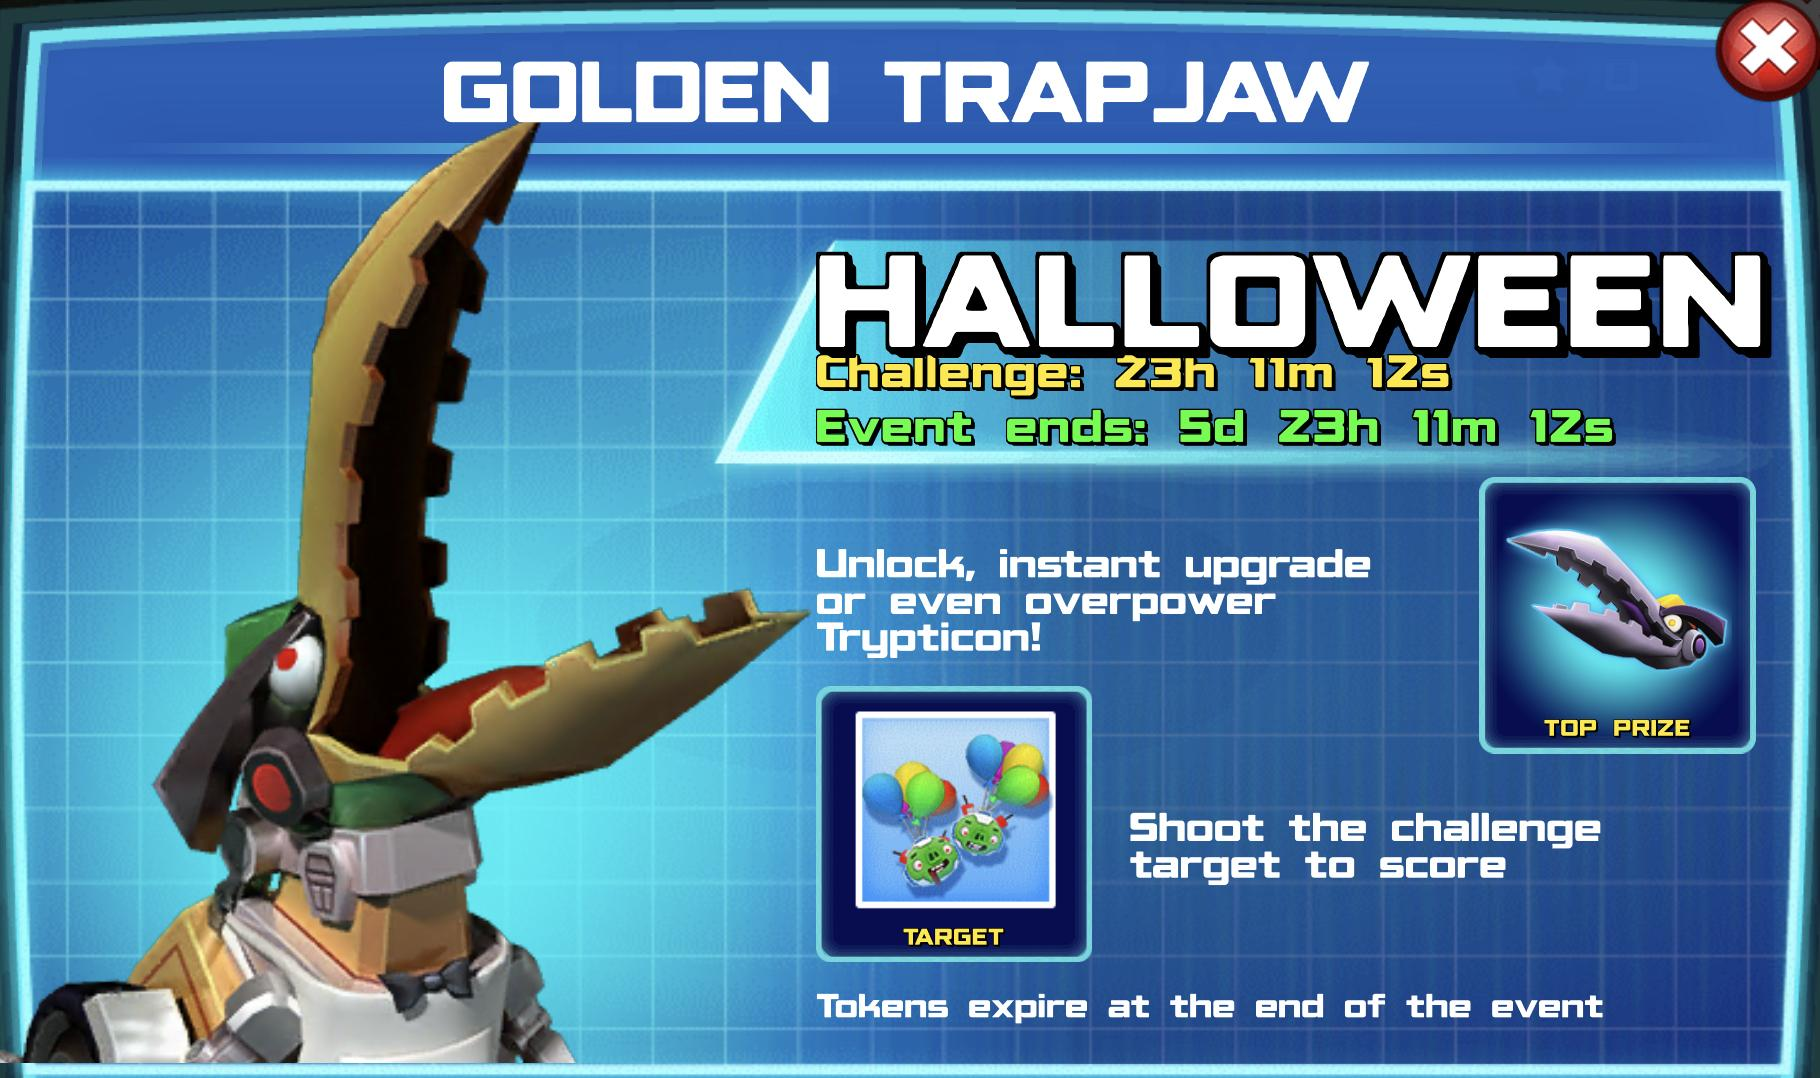 The event banner for Golden Trapjaw